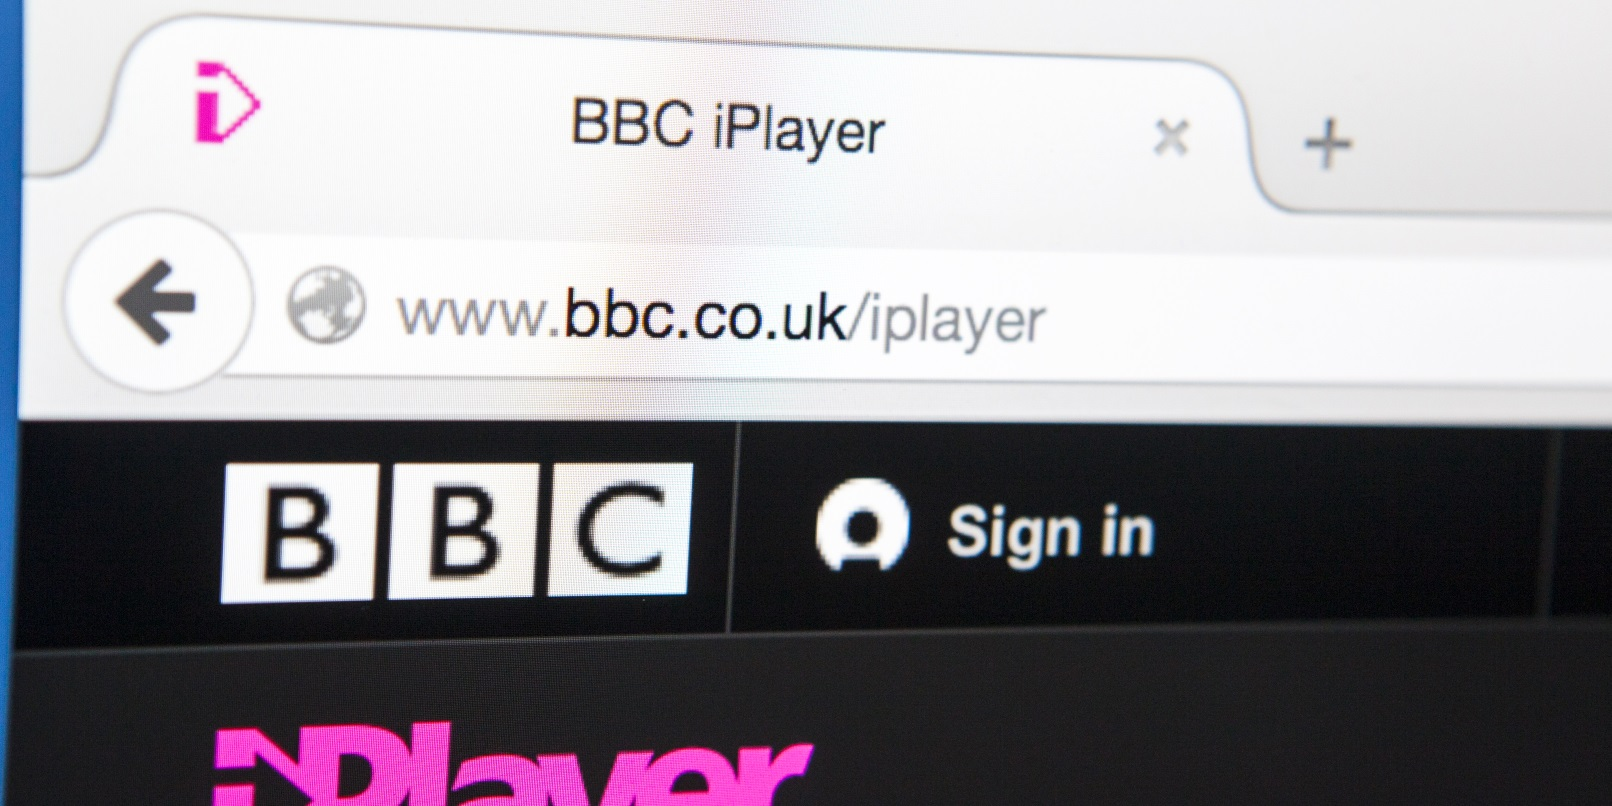 BBC plans to launch music streaming service, but it won't compete with Spotify or Apple